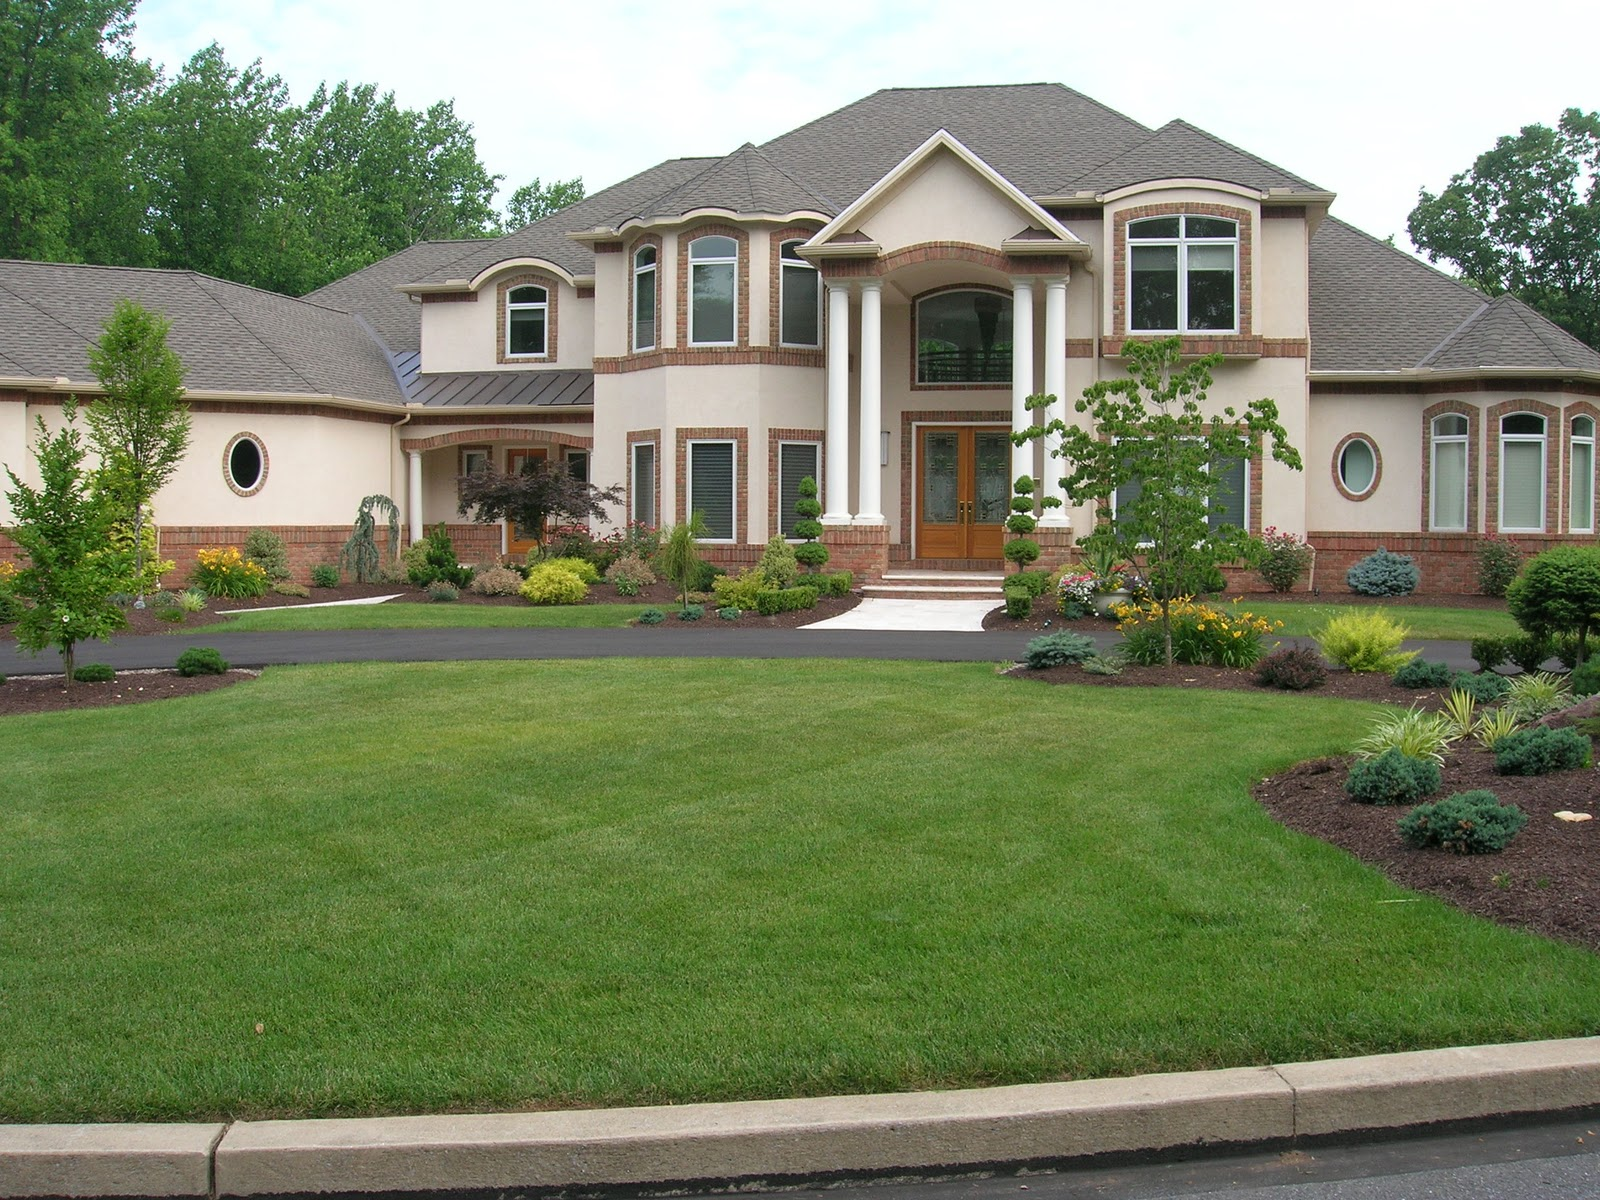 Many people today opt for landscape ideas as a potential way to design their house and surroundings in fact the looks of a house depend on a lot more than